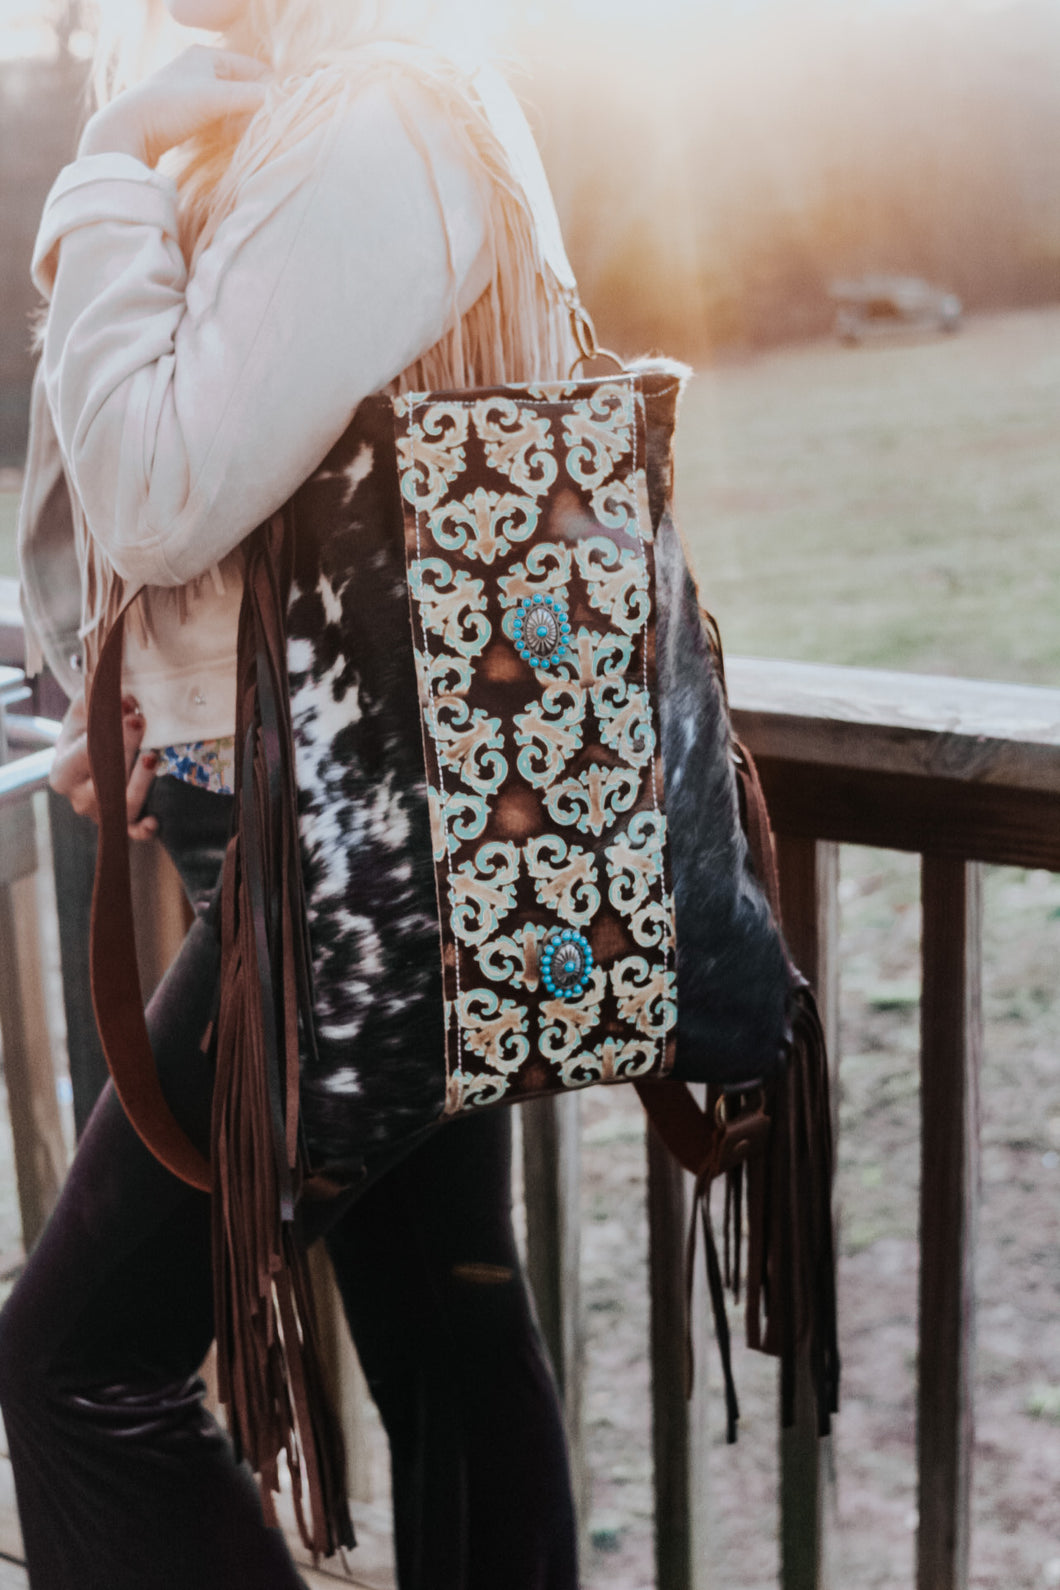 Turquoise Swirls and Black and White Hide Backpack